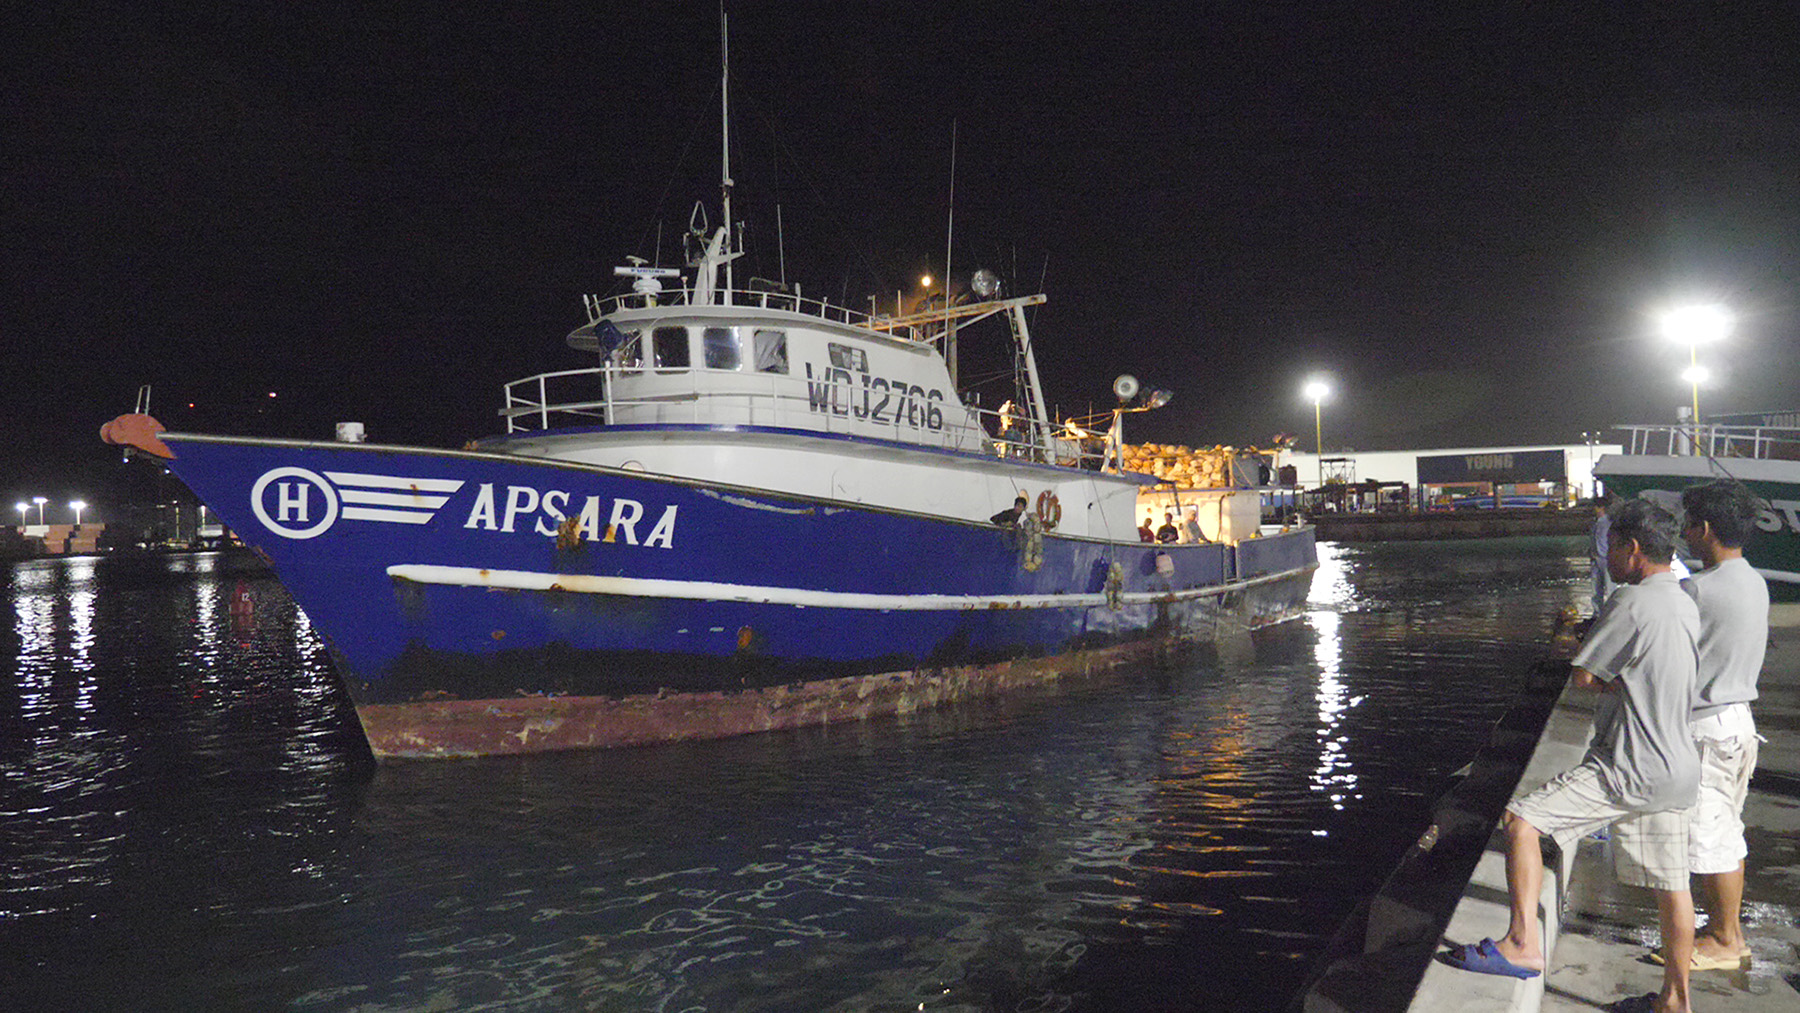 <p>Long before the sun rises, a vessel pulls up to the pier to unload its catch of ahi. Hawaii&#8217;s longline fleet has extended its season by purchasing some of the fishing rights of Pacific island nations, guaranteeing a steady flow of fish through the holiday season.</p>